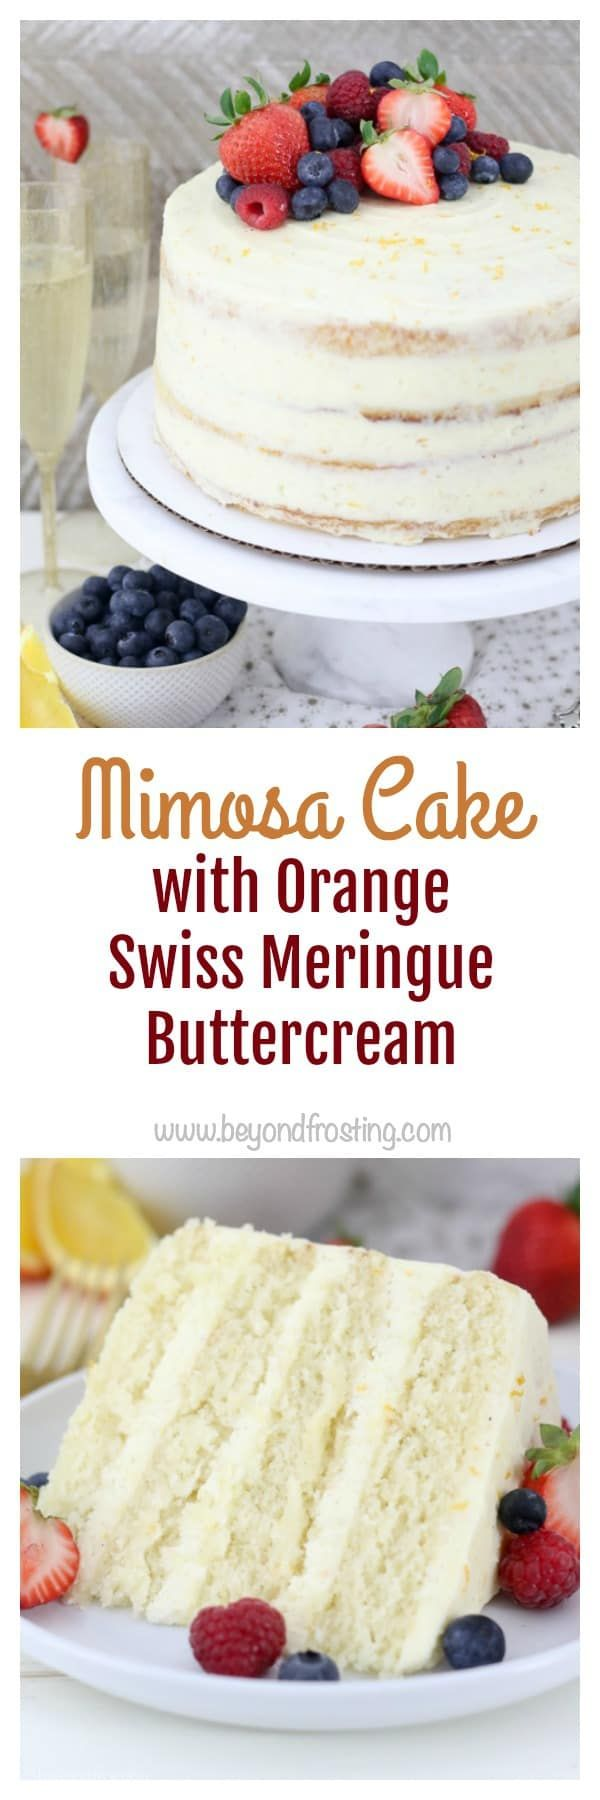 This Mimosa Cake Recipe is a moist champagne sponge cake with an orange Swiss meringue buttercream frosting.